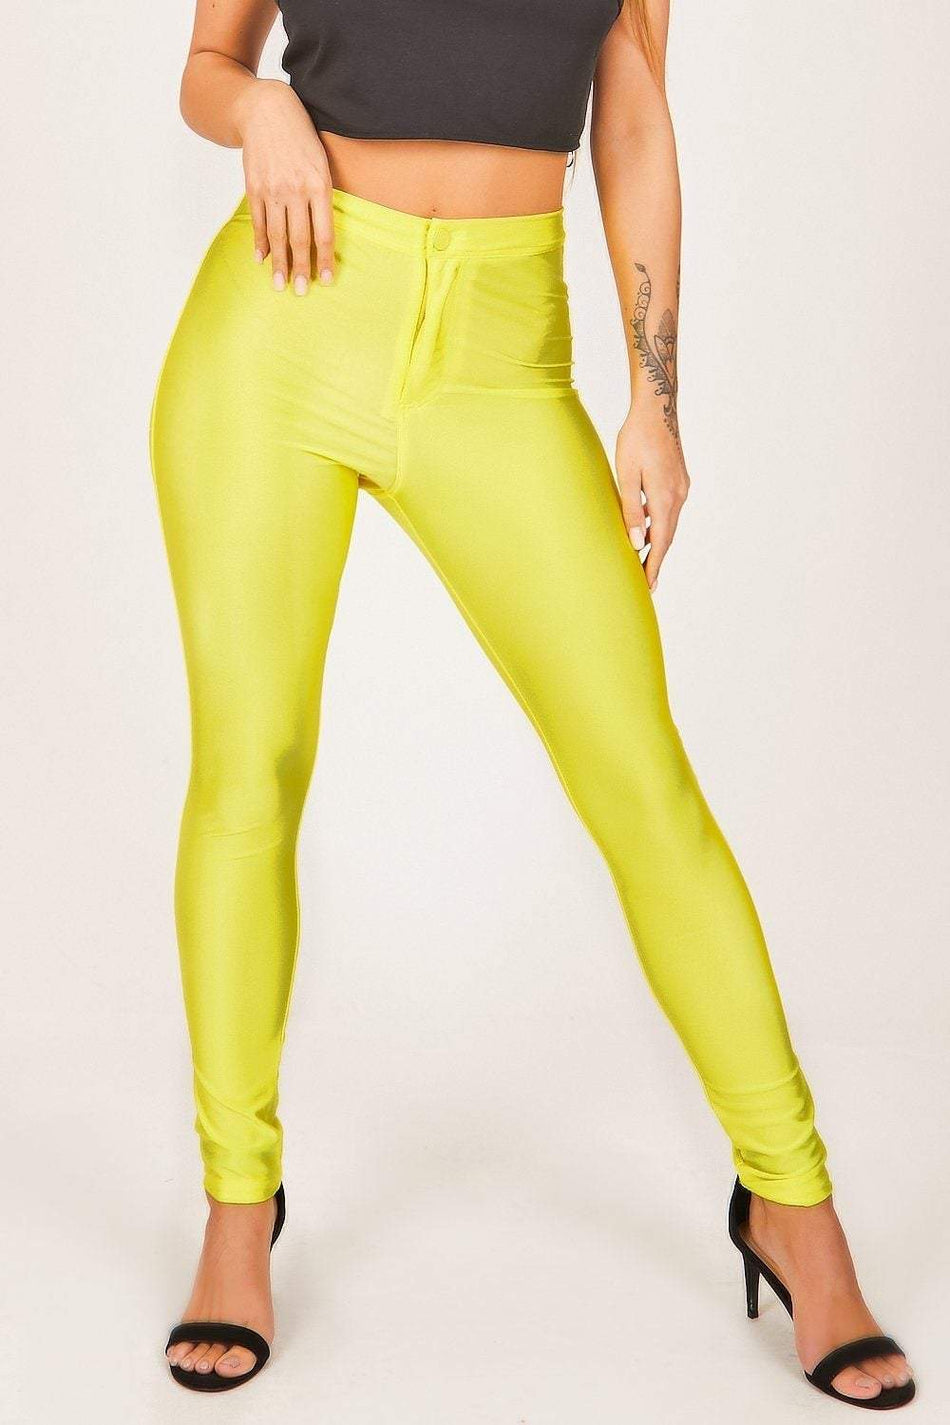 Neon Yellow Disco Leggings - KATCH ME